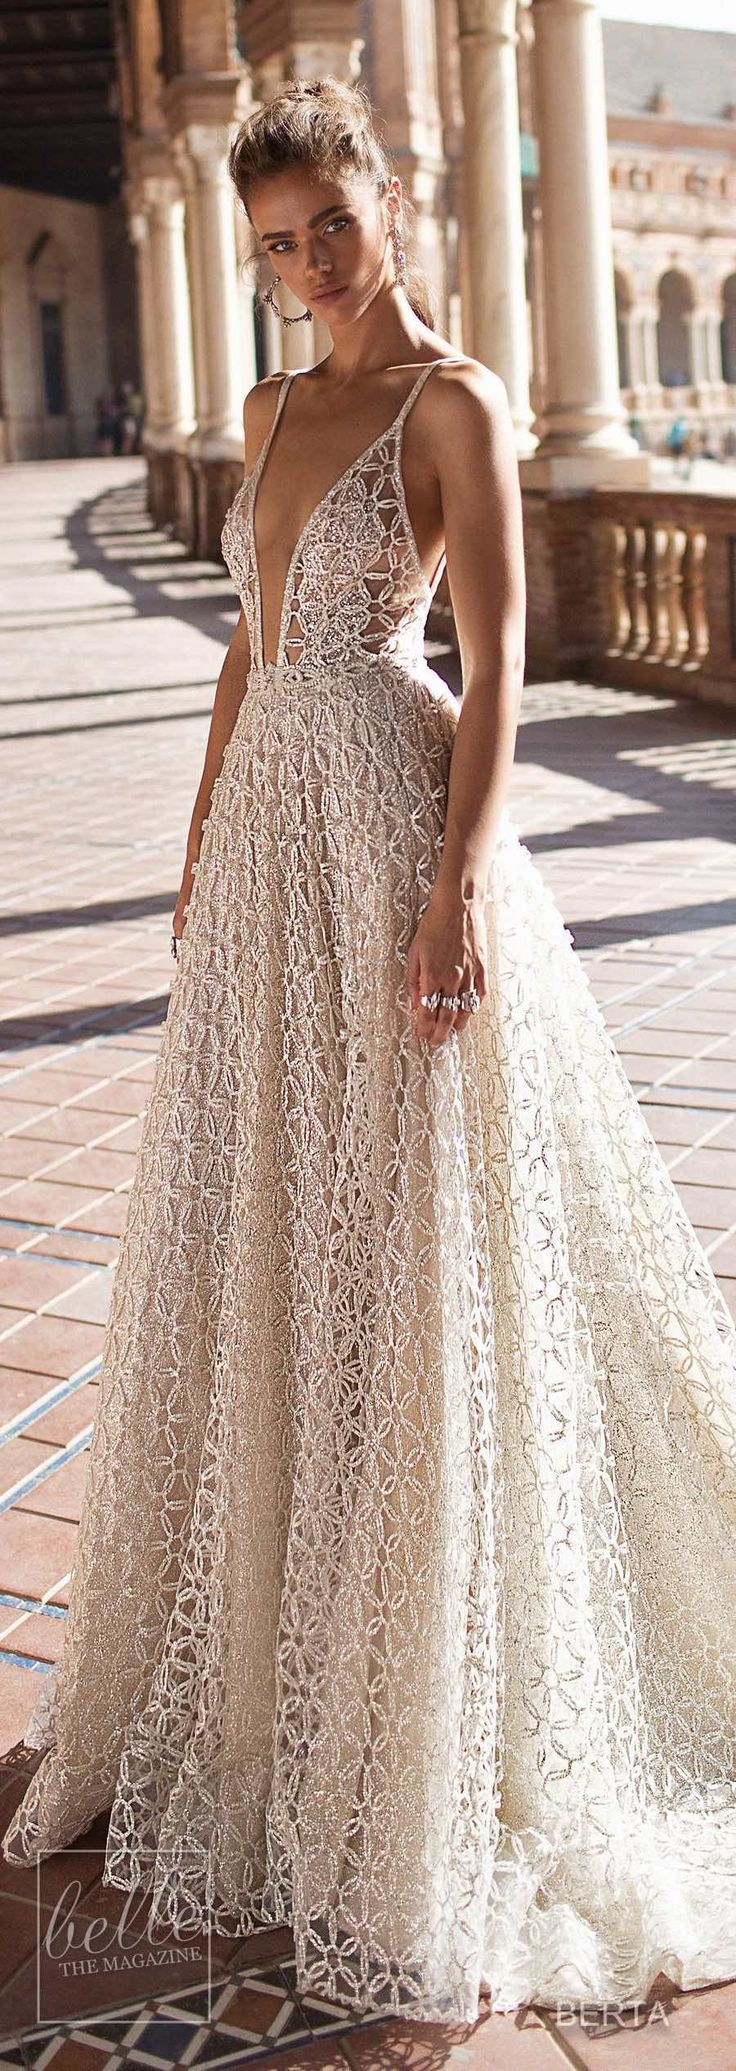 Berta Herbst 2018 Bridal dress collection for Seville